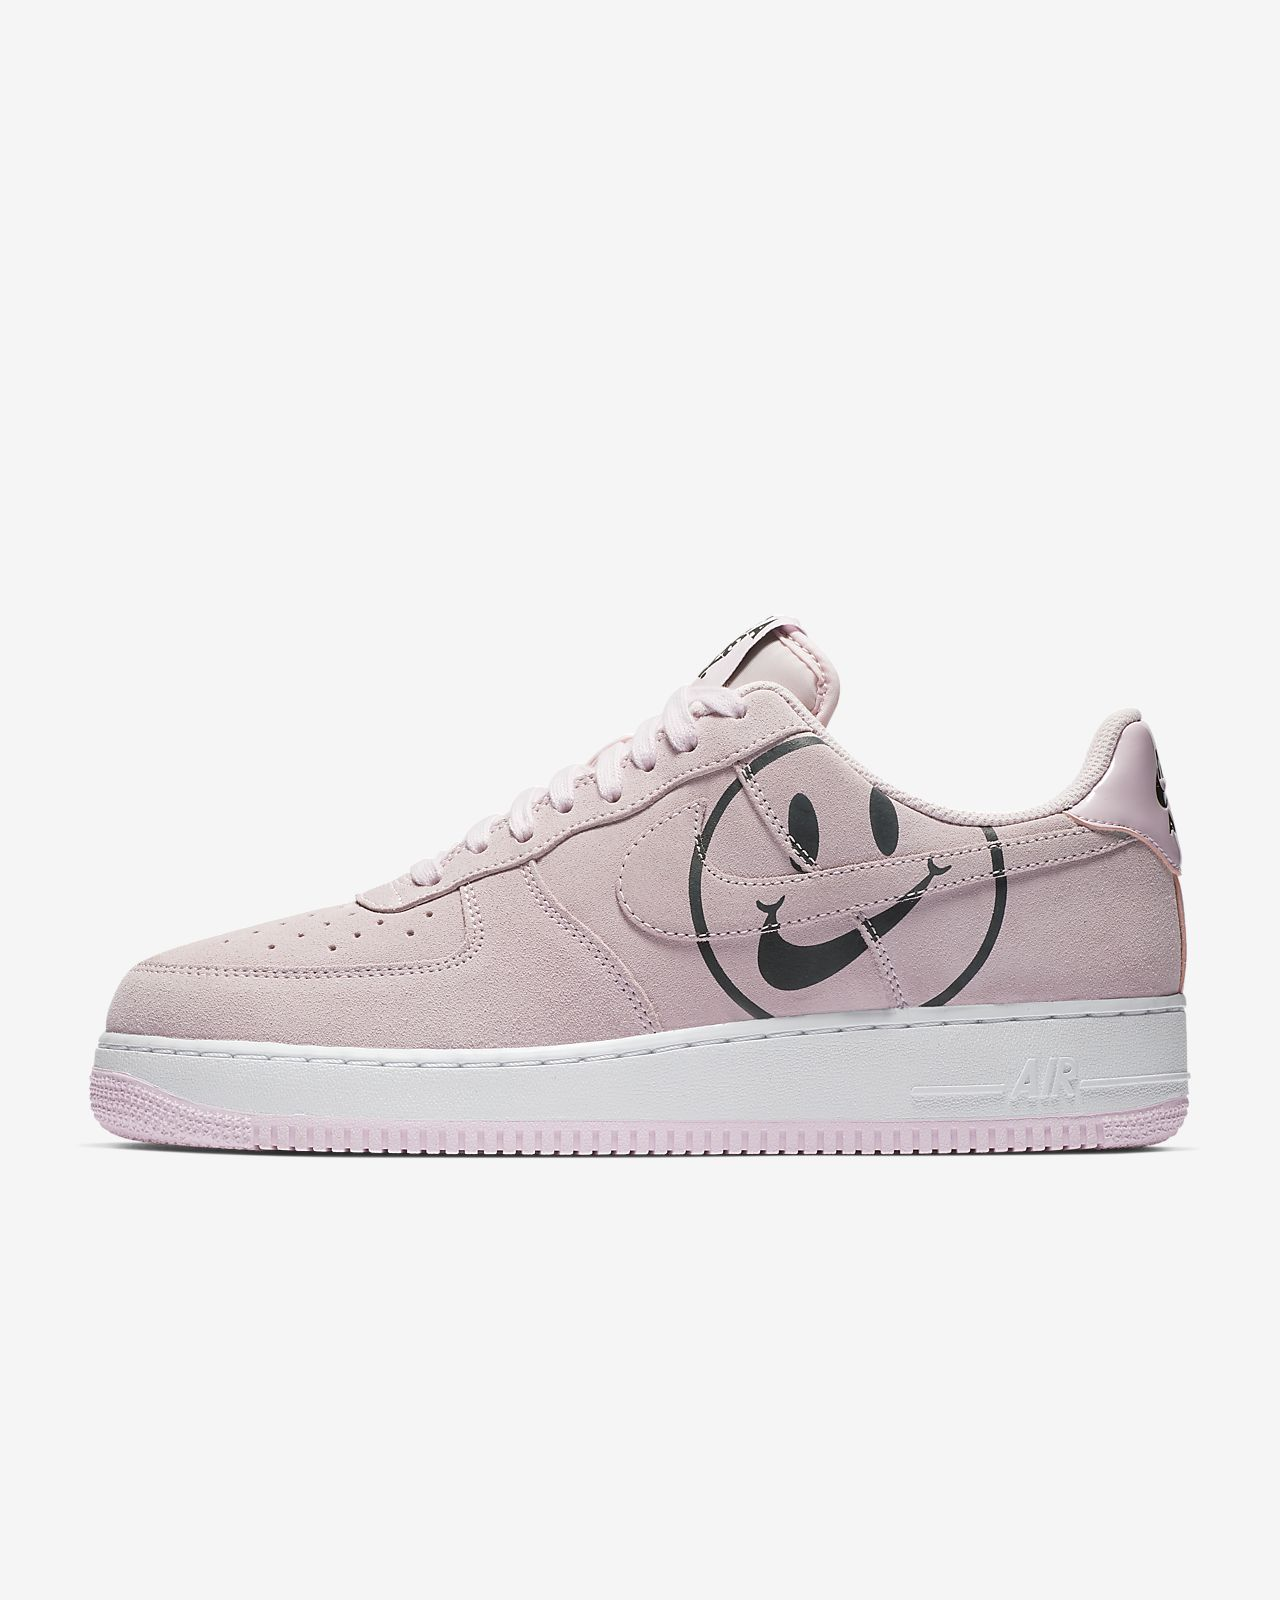 best service 31d0f e4ec7 ... Nike Air Force 1  07 LV8 ND Men s Shoe